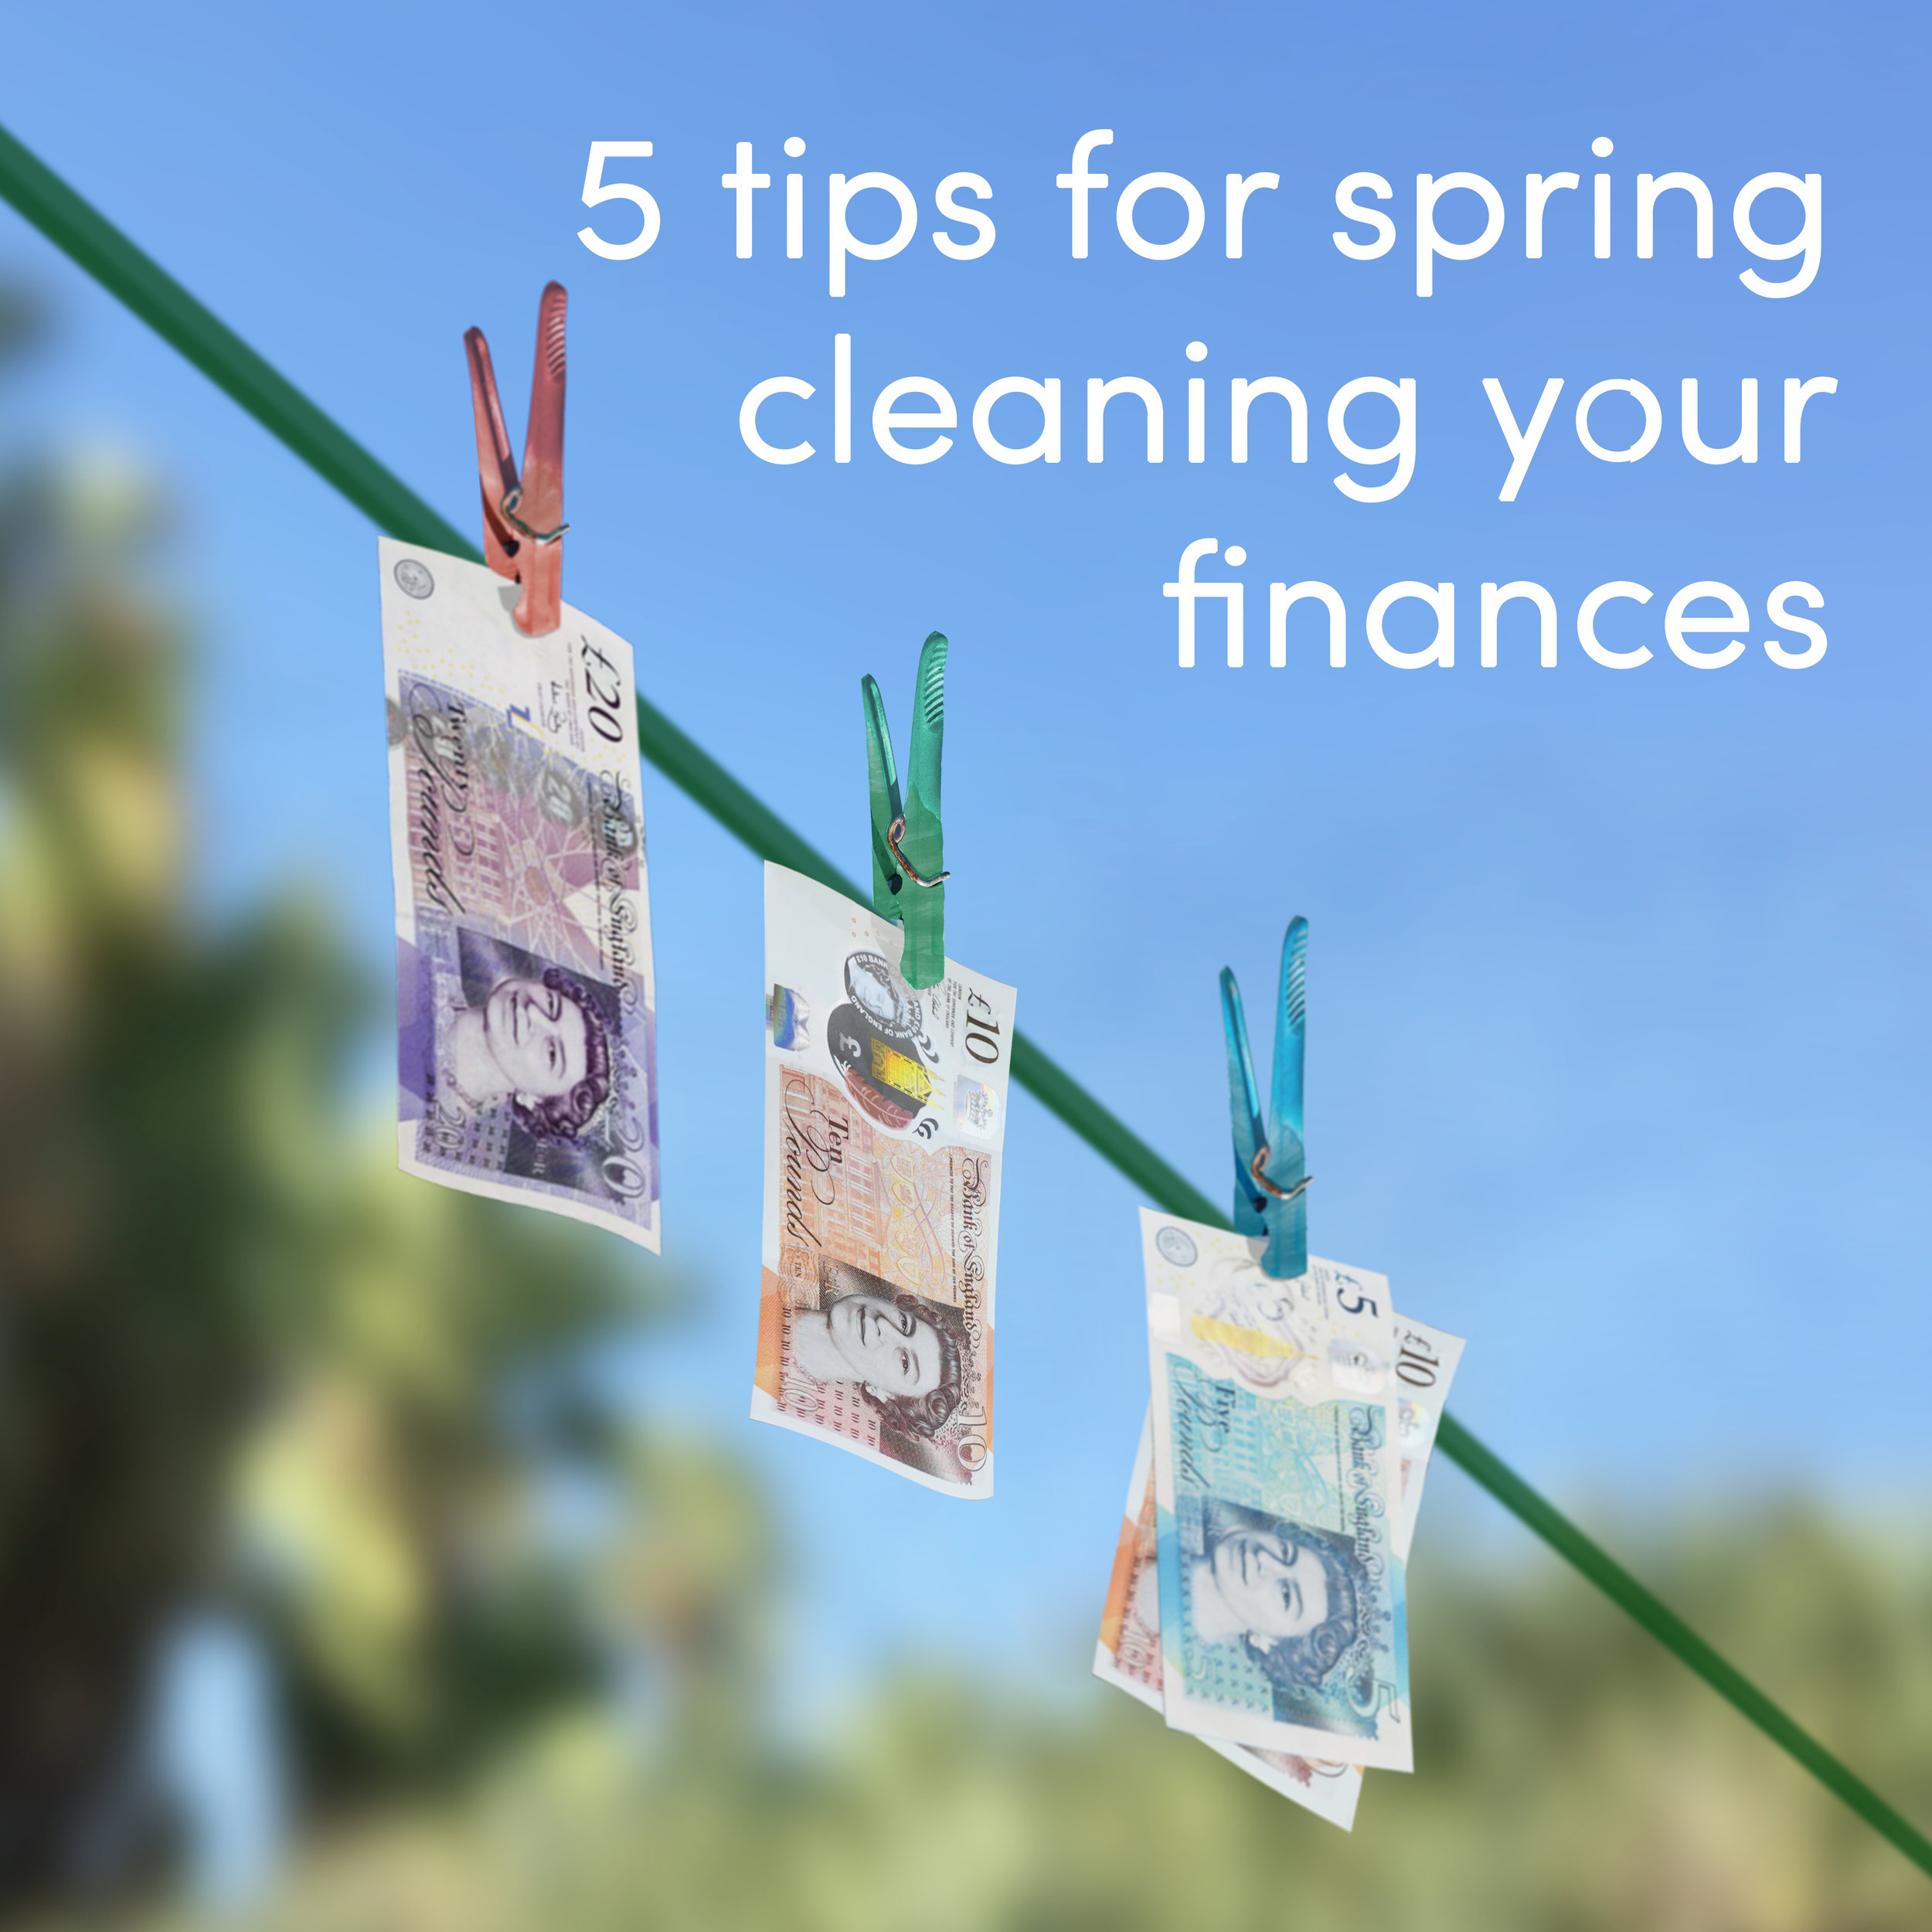 TWiCE 5 tips for spring cleaning finances.jpg